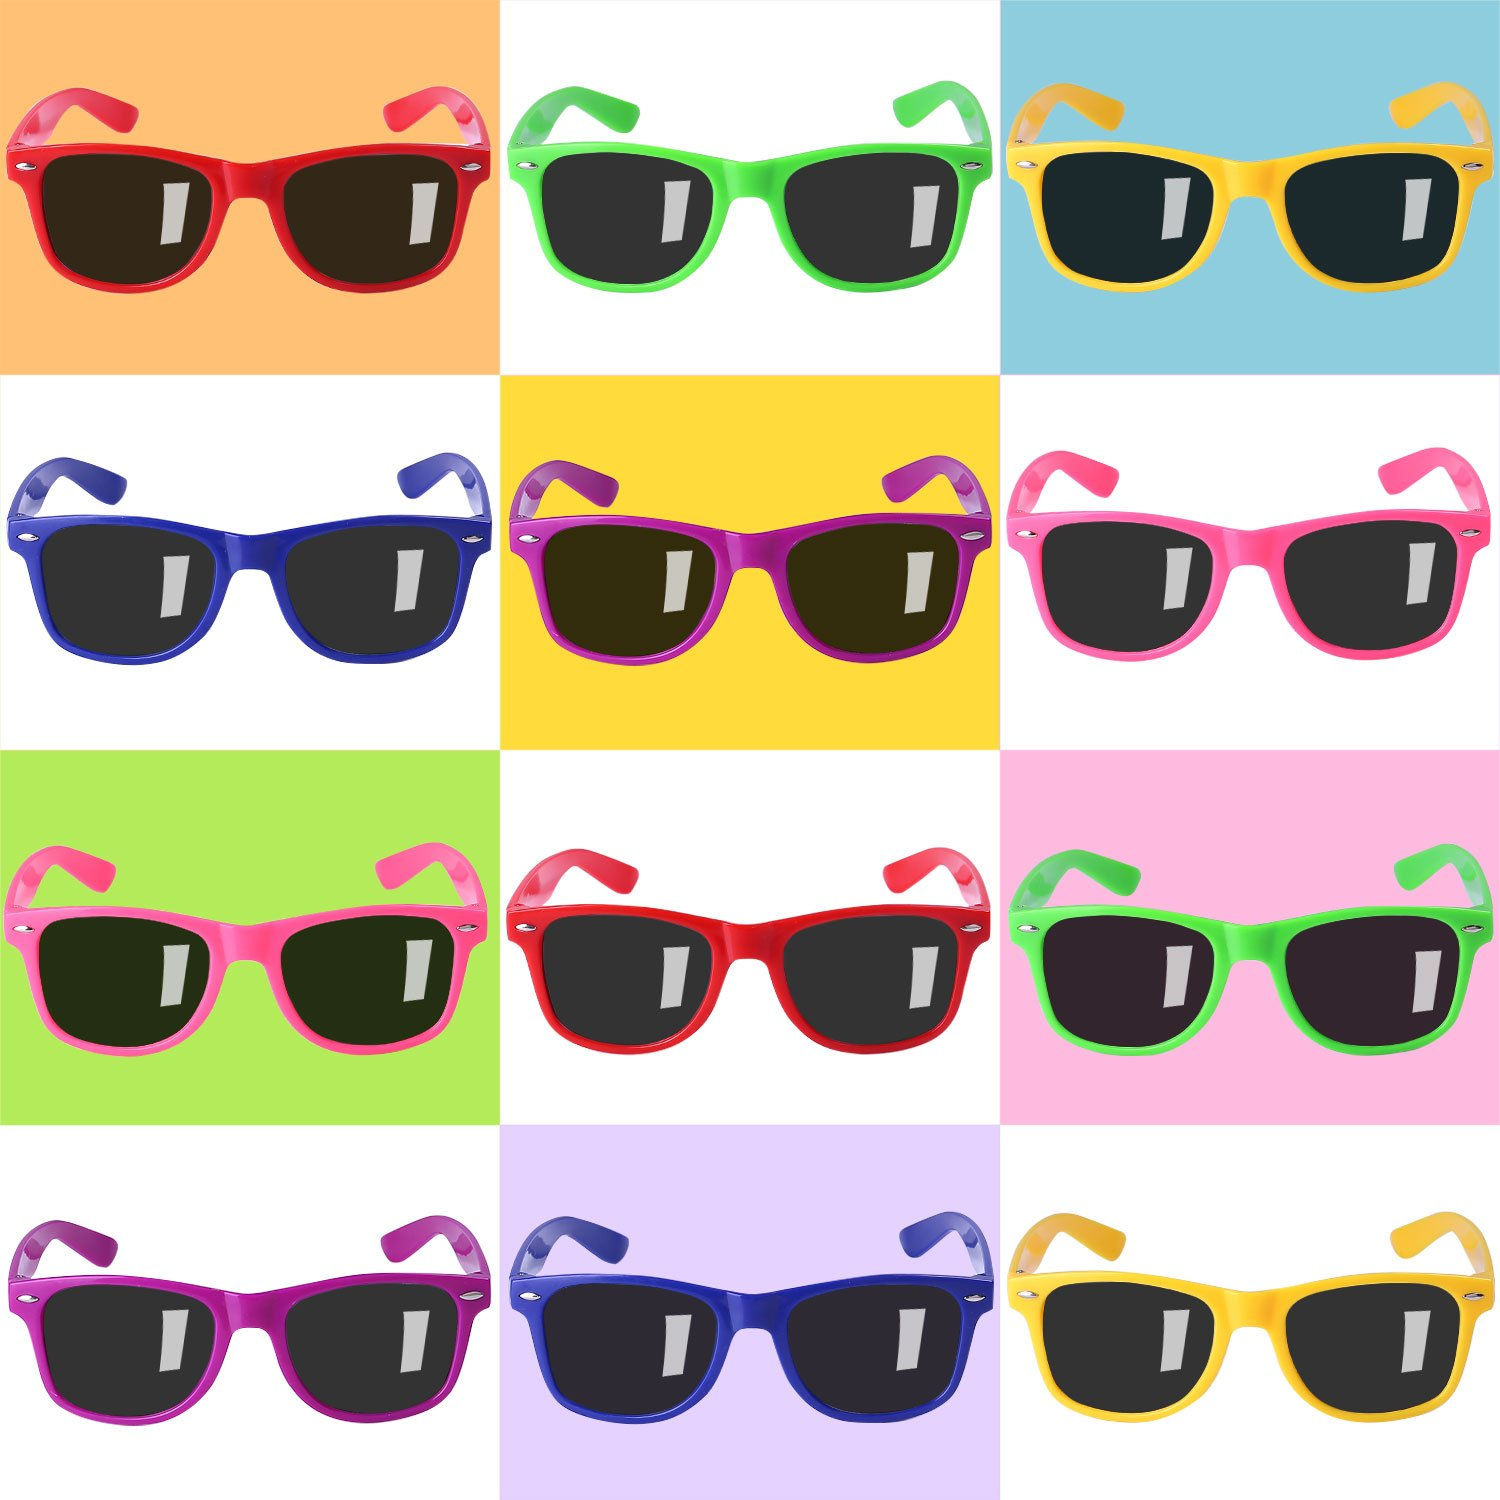 12 Pack Sunglasses for Teenagers and Adults in Bulk with UV400 Eye Protection, Neon Sunglasses for Boys and Girls, Teens and Average Size Adults, Fun Gifts, Goody Bag Fillers for Party Favors